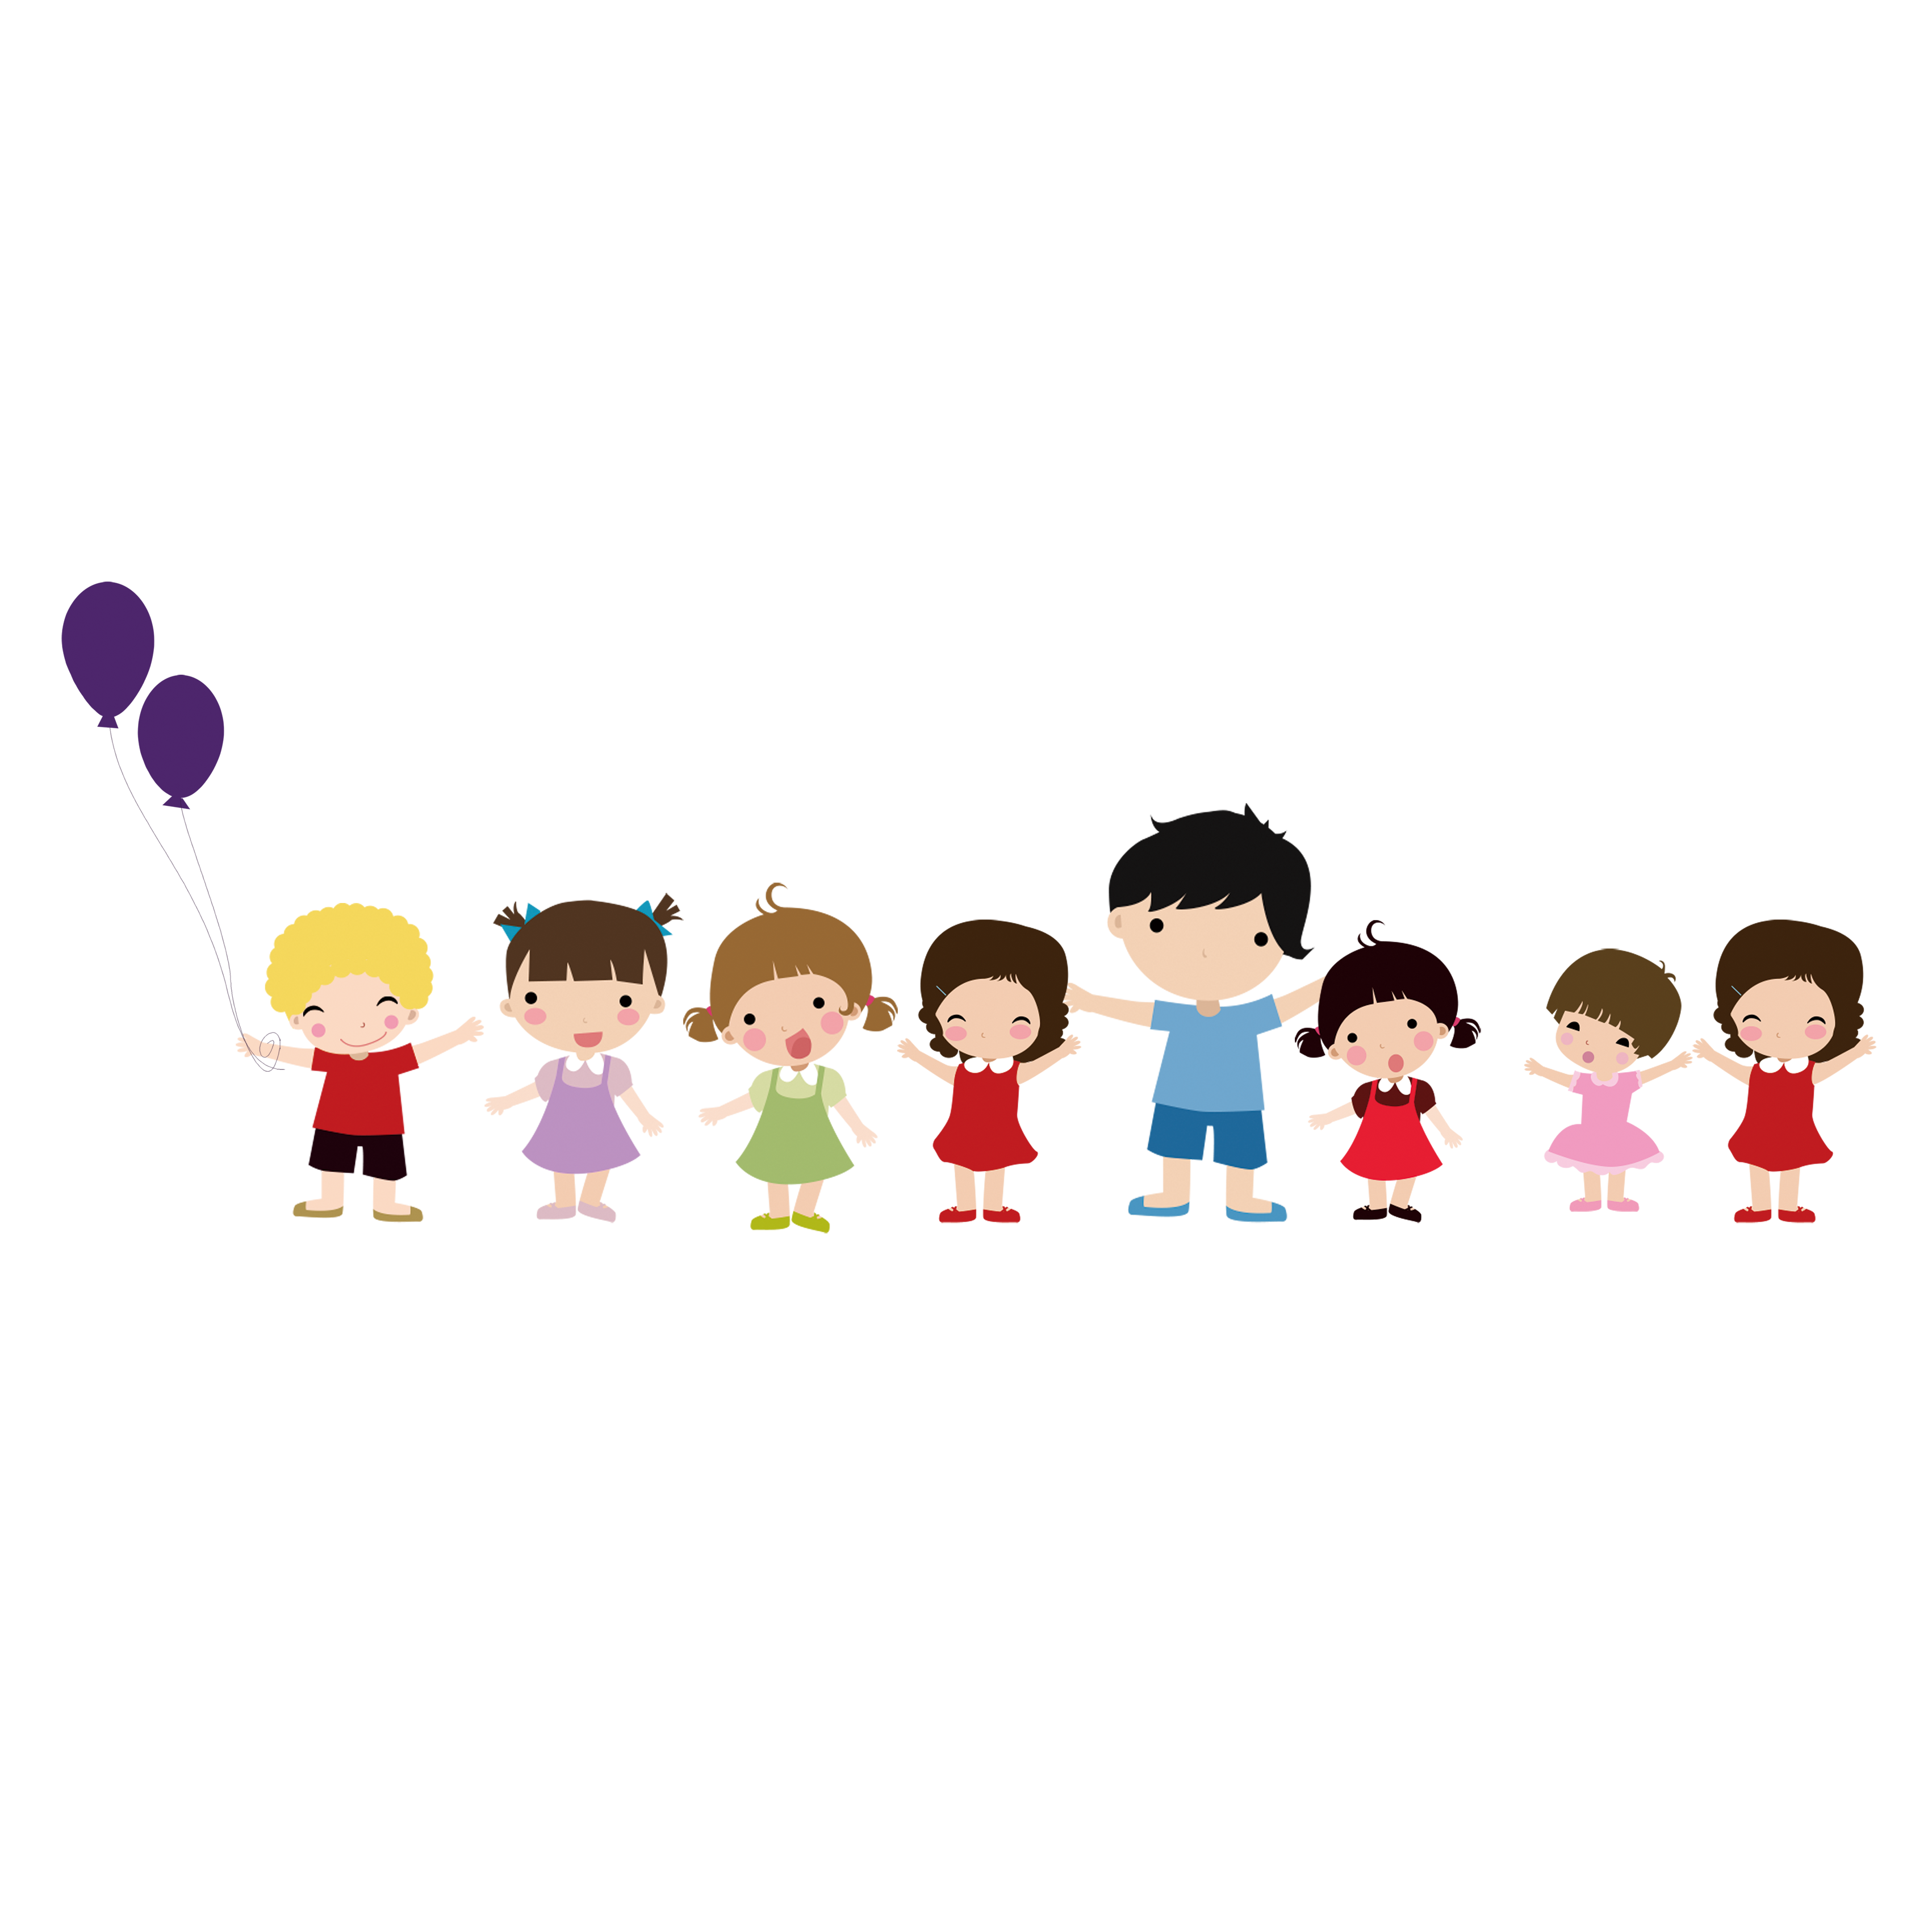 Creative clipart creative play. Childrens day children s